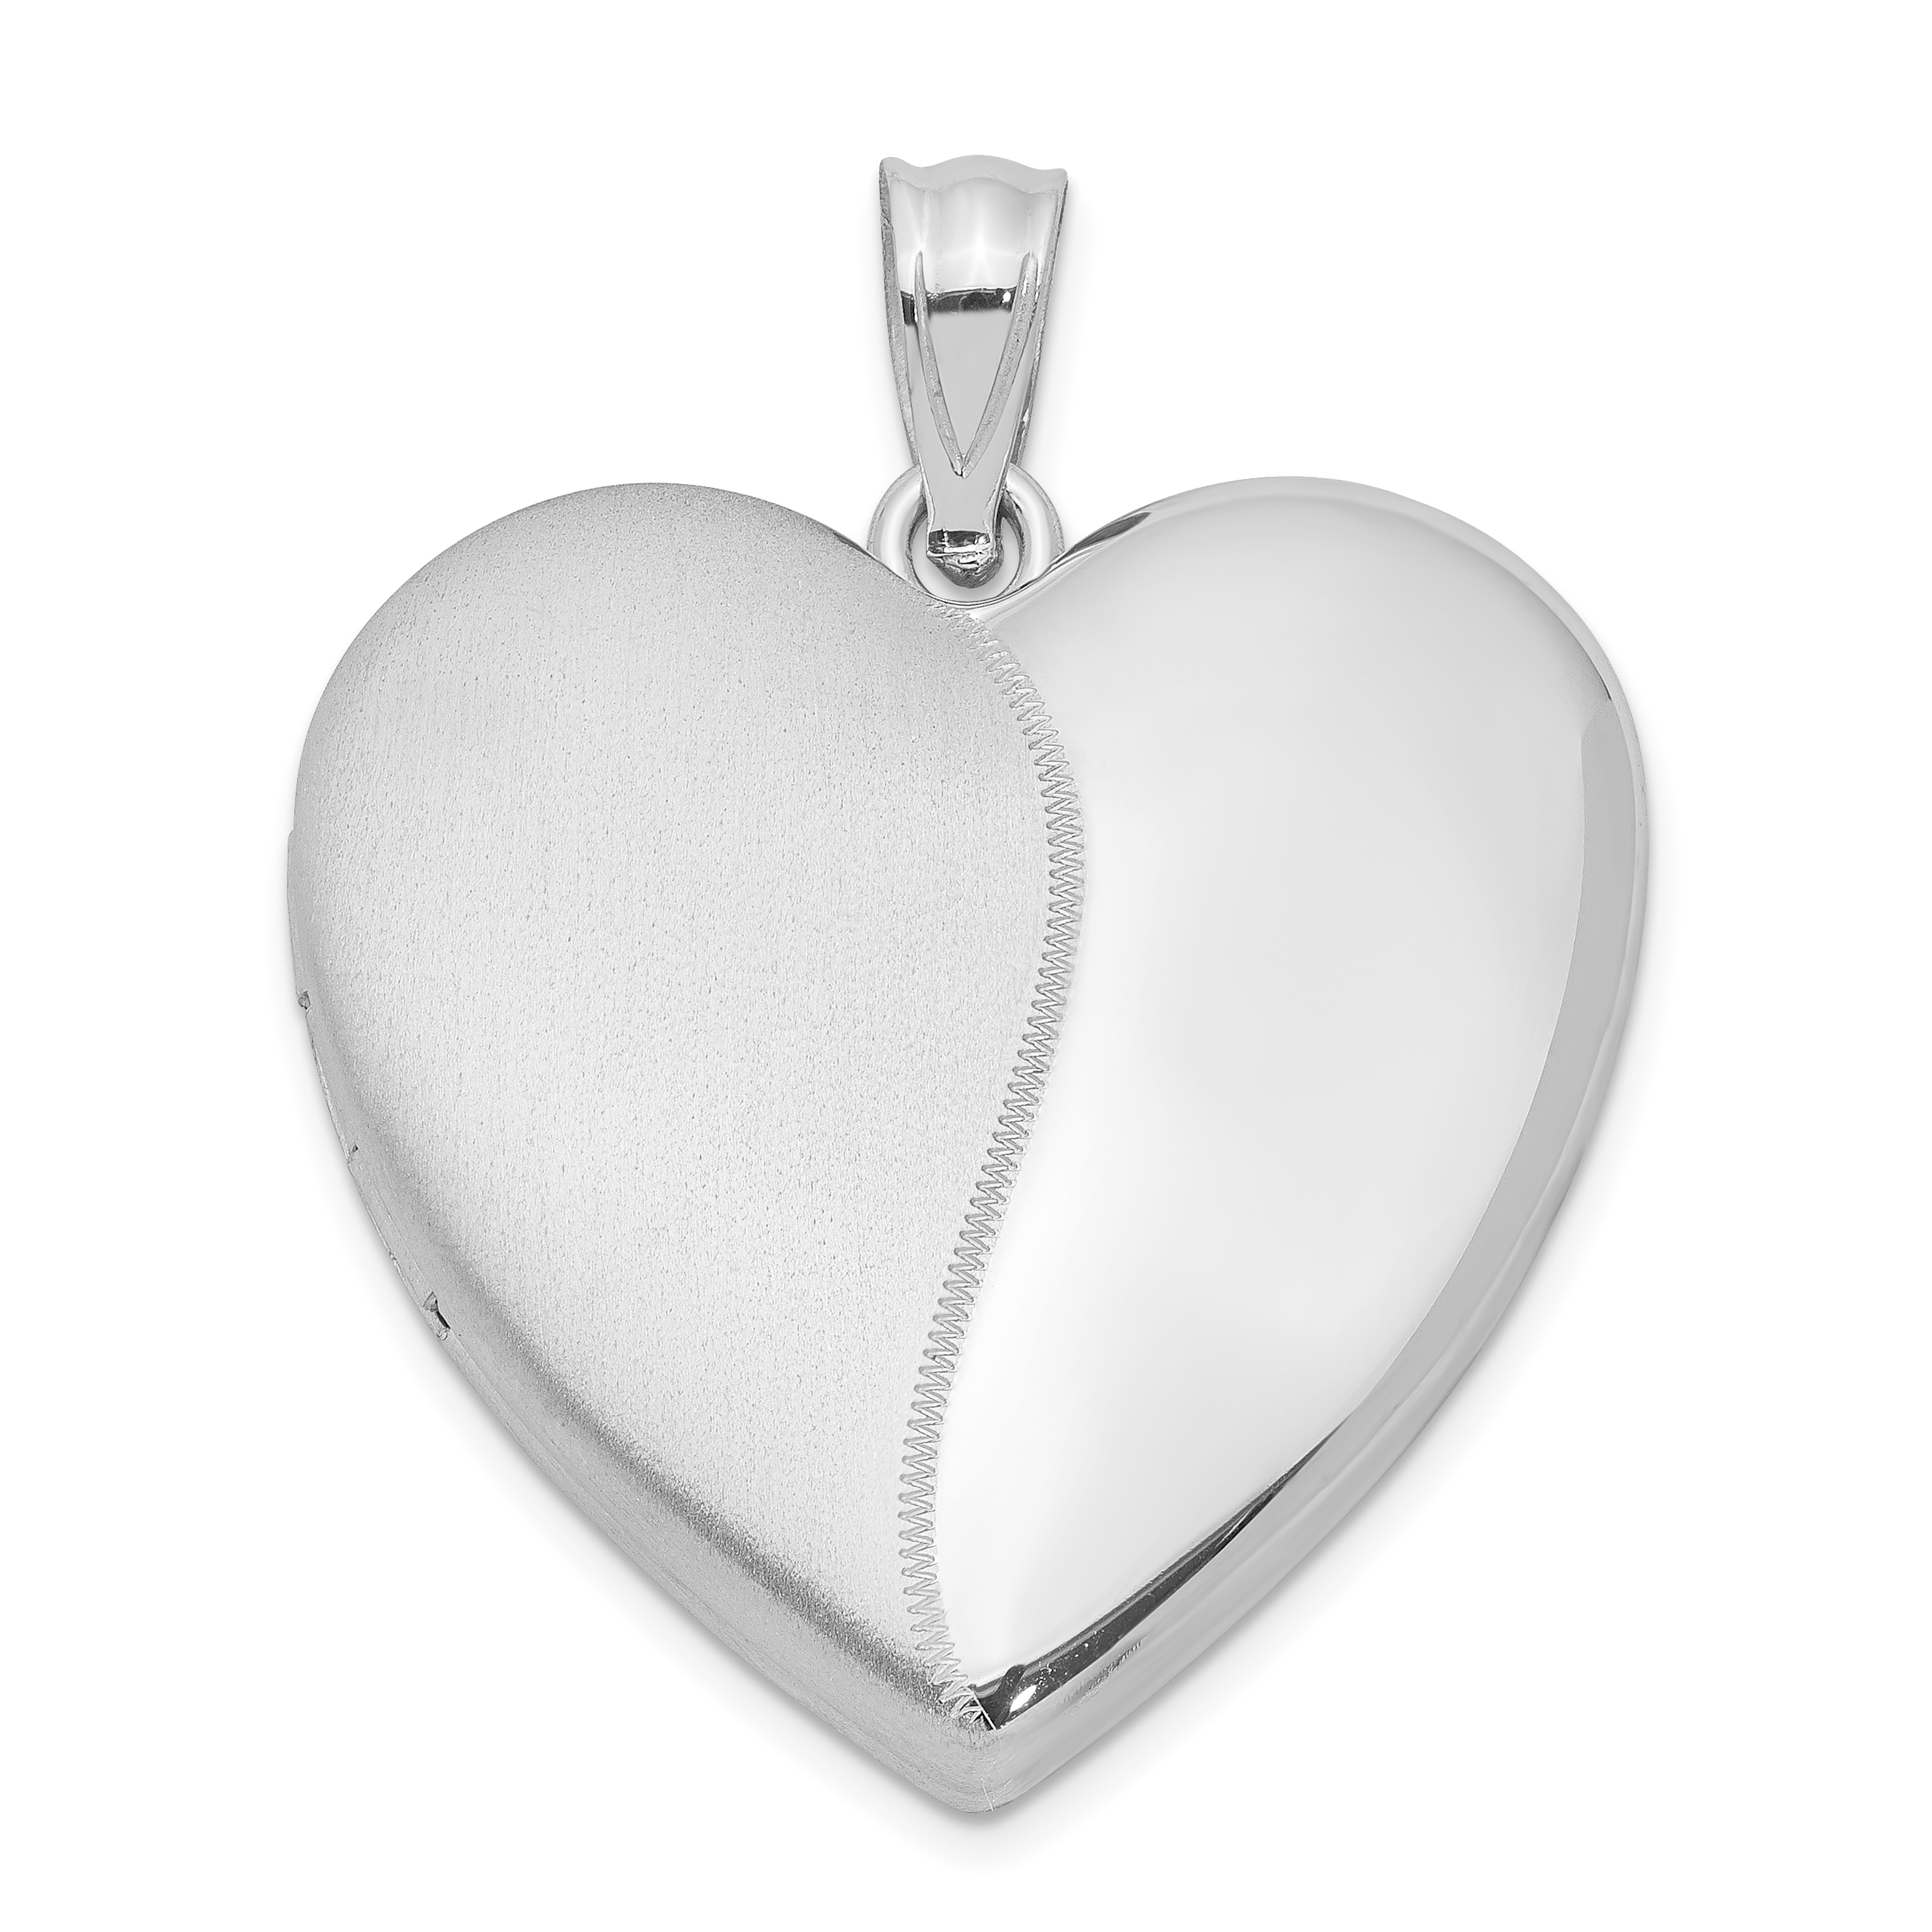 925 Sterling Silver 24mm Heart Photo Pendant Charm Locket Chain Necklace That Holds Pictures Fine Jewelry Gifts For Women For Her - image 3 of 3